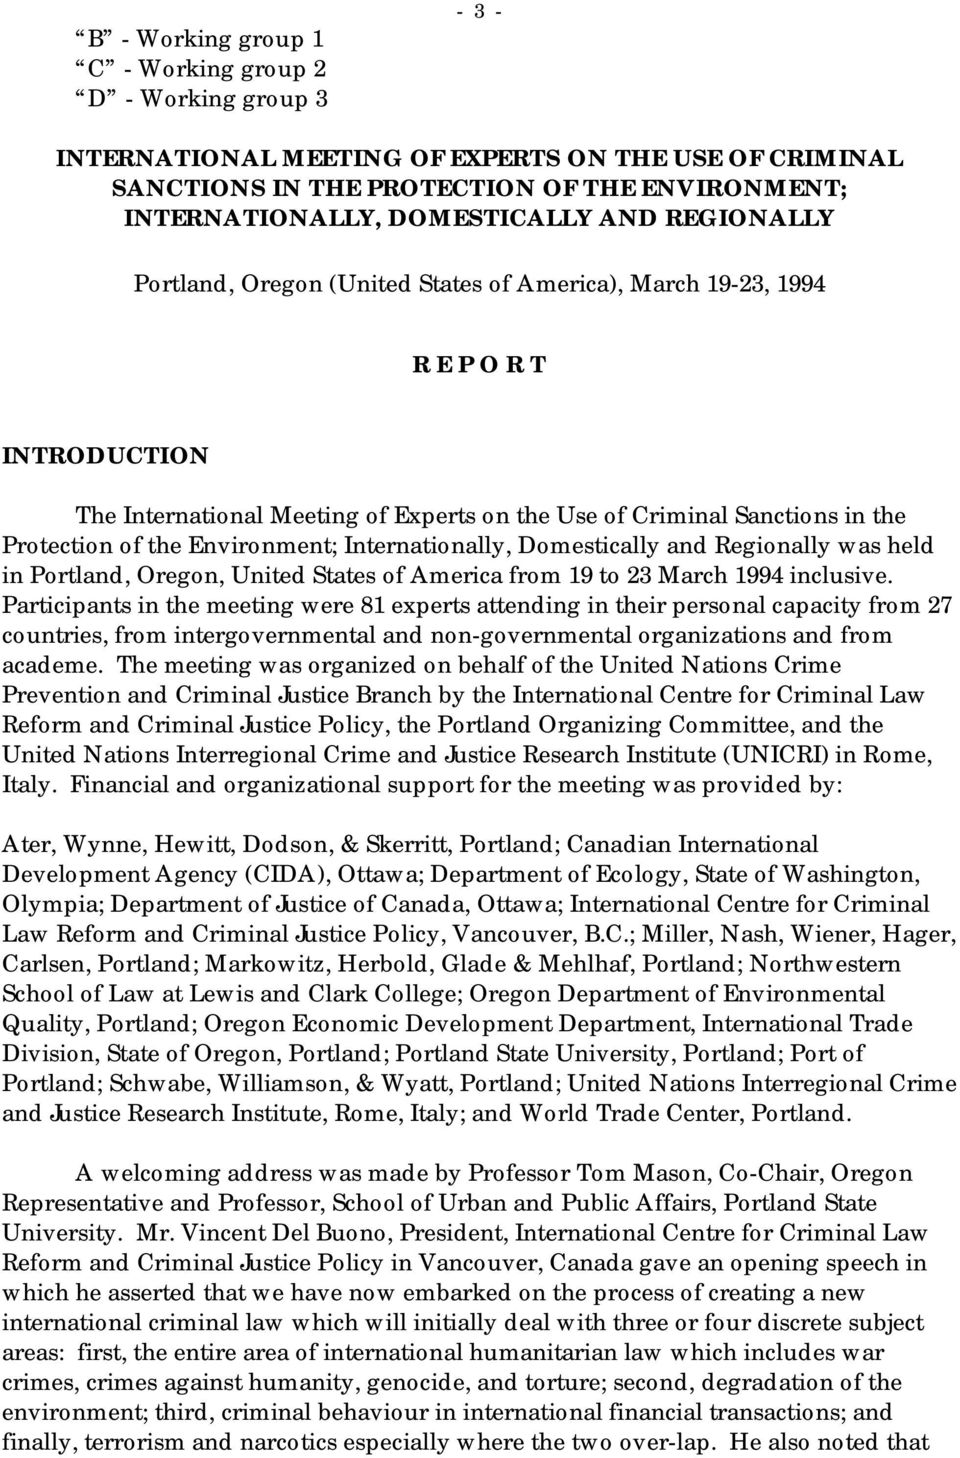 Environment; Internationally, Domestically and Regionally was held in Portland, Oregon, United States of America from 19 to 23 March 1994 inclusive.